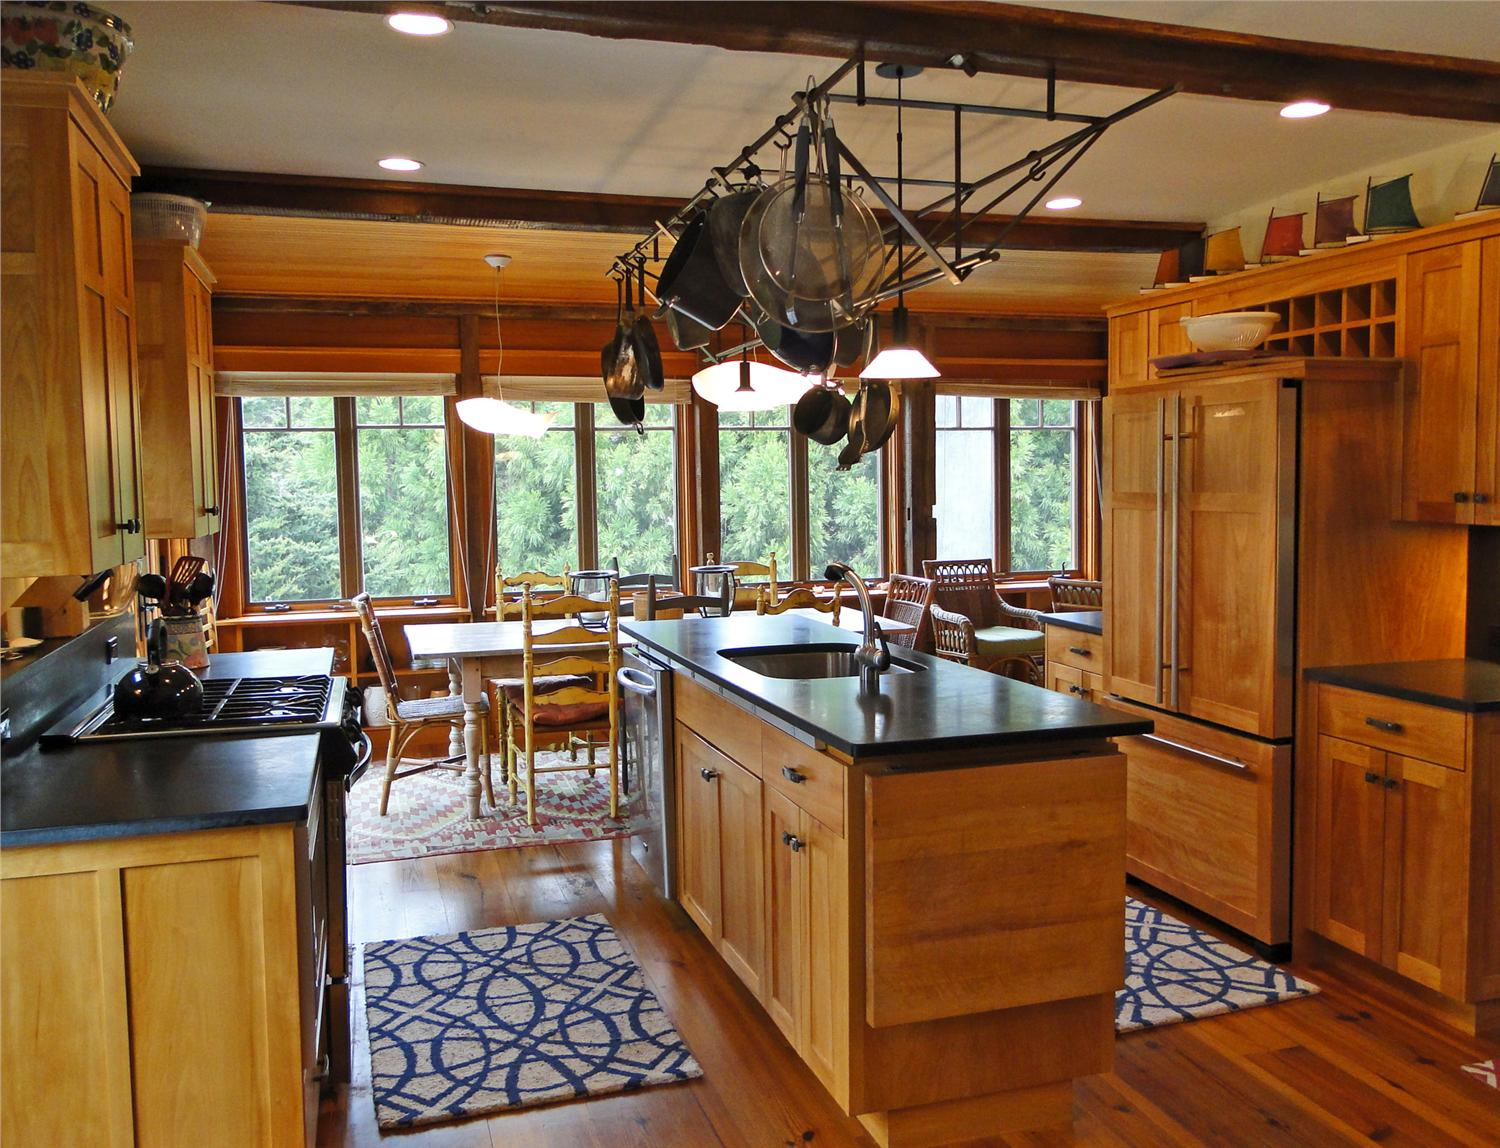 Top Kitchens - we photographed most of these homes, and love these kitchens! One of our favorite advantages of a vacation rental - kitchens!